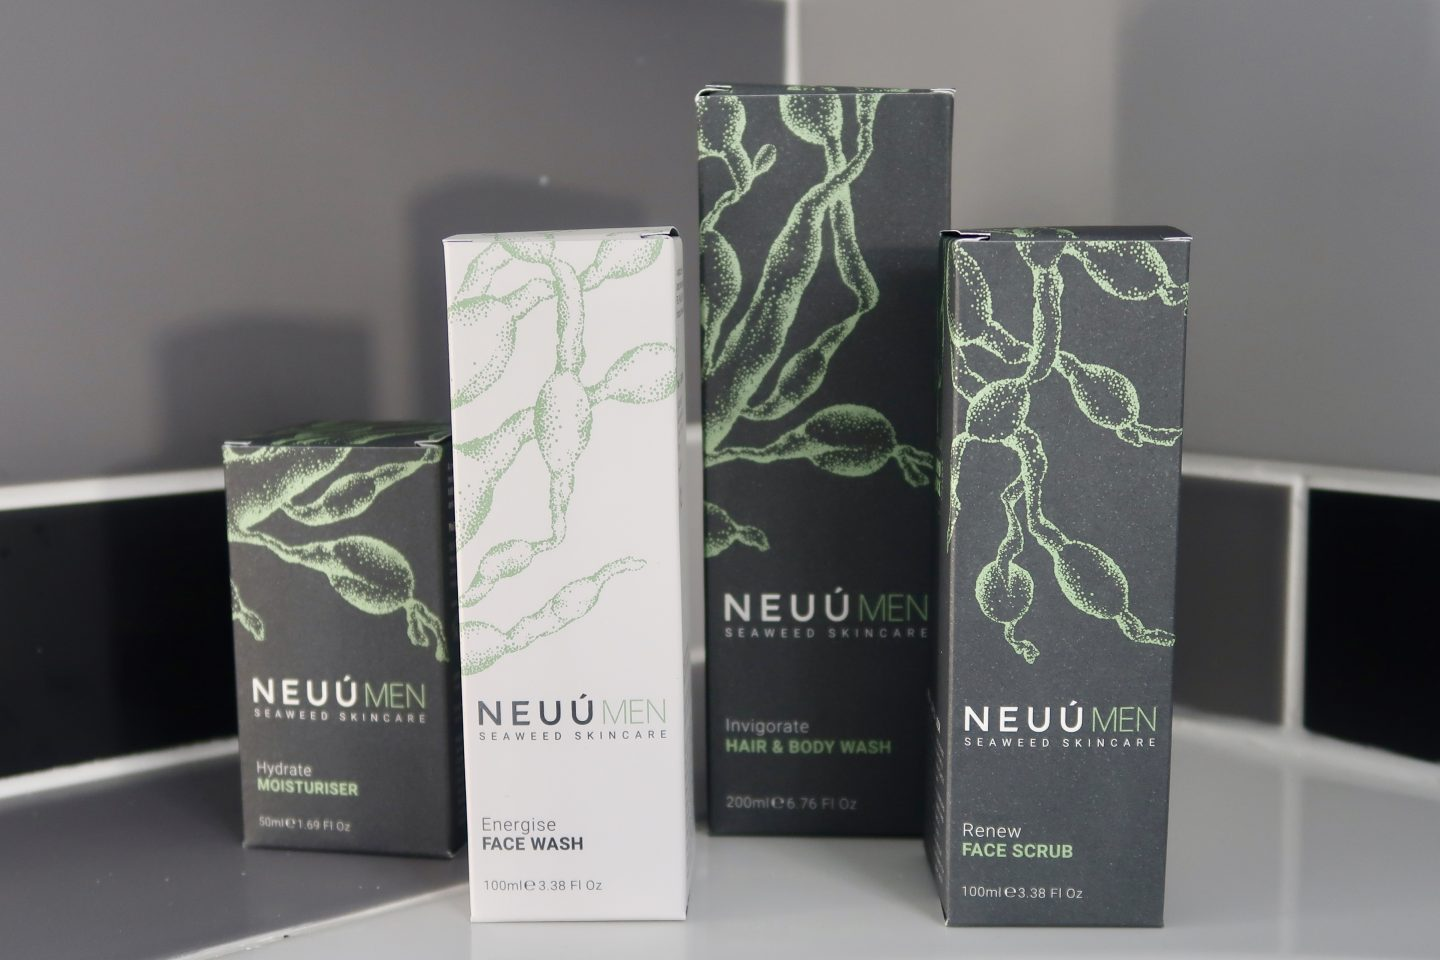 4 boxes of NEUU skincare products. 3 boxes are dark grey with green leaves design, one is white with the same green leaf design